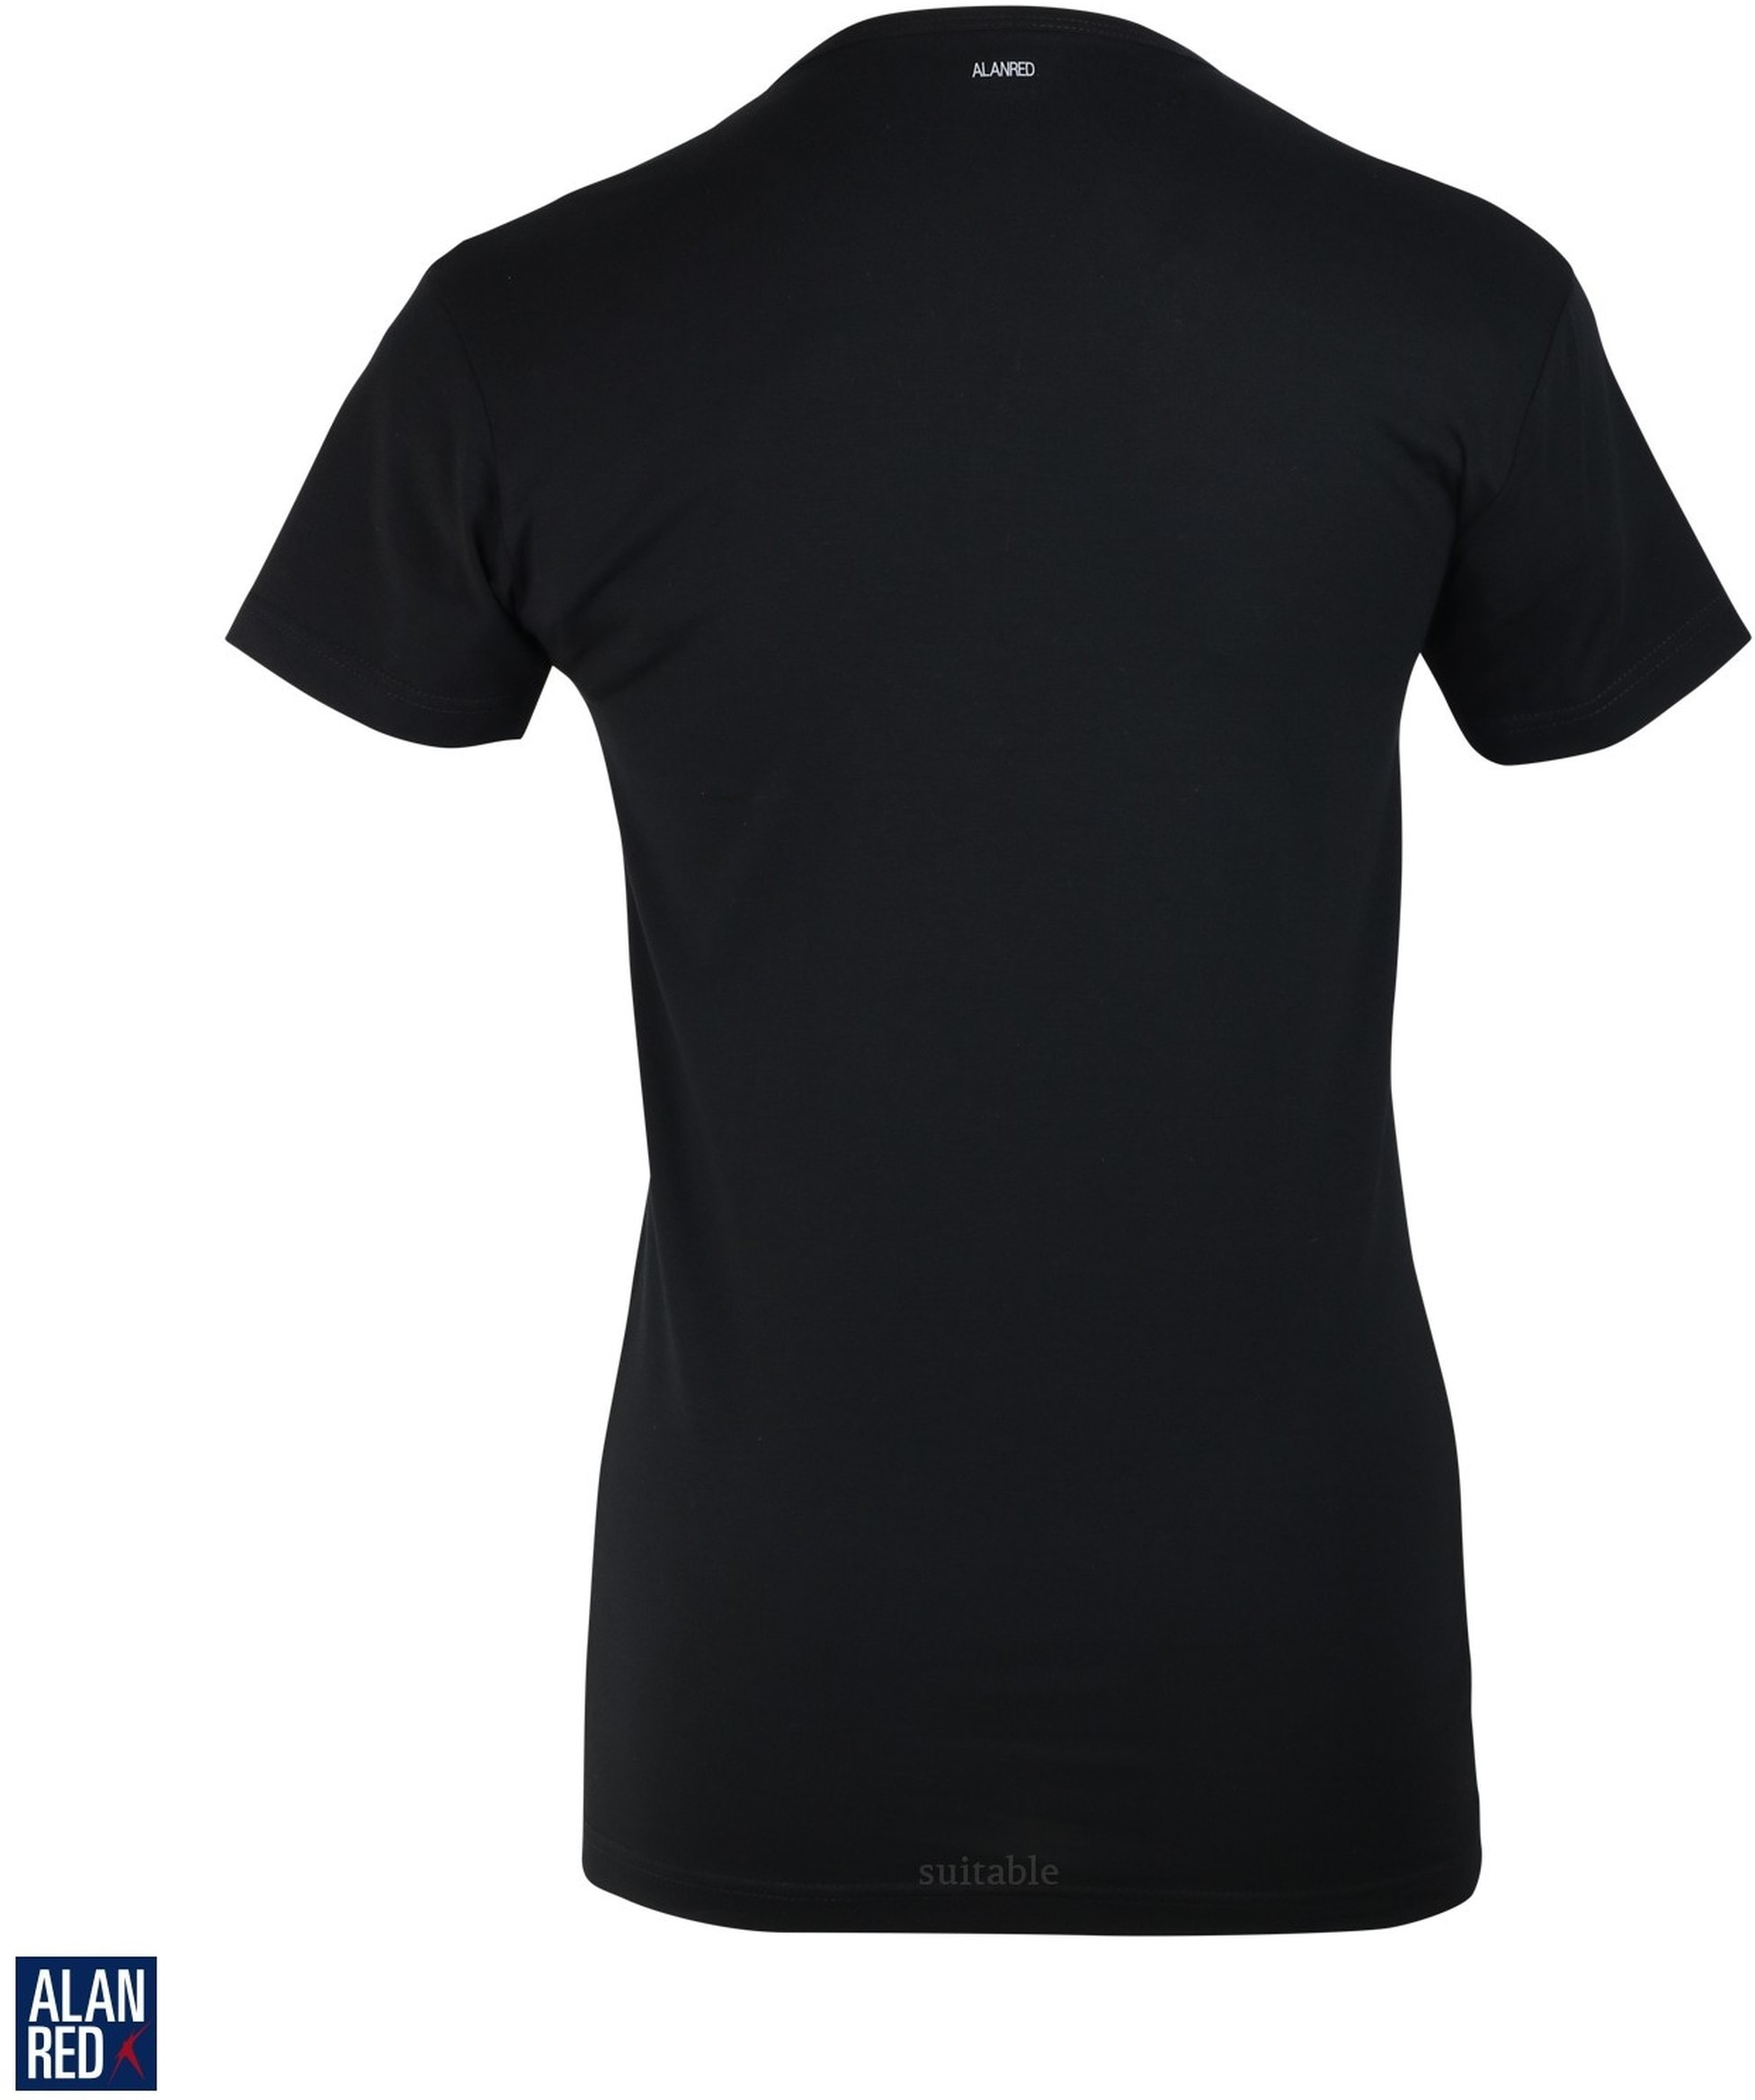 Alan Red Oklahoma T-shirt Stretch Black 1-Pack foto 1